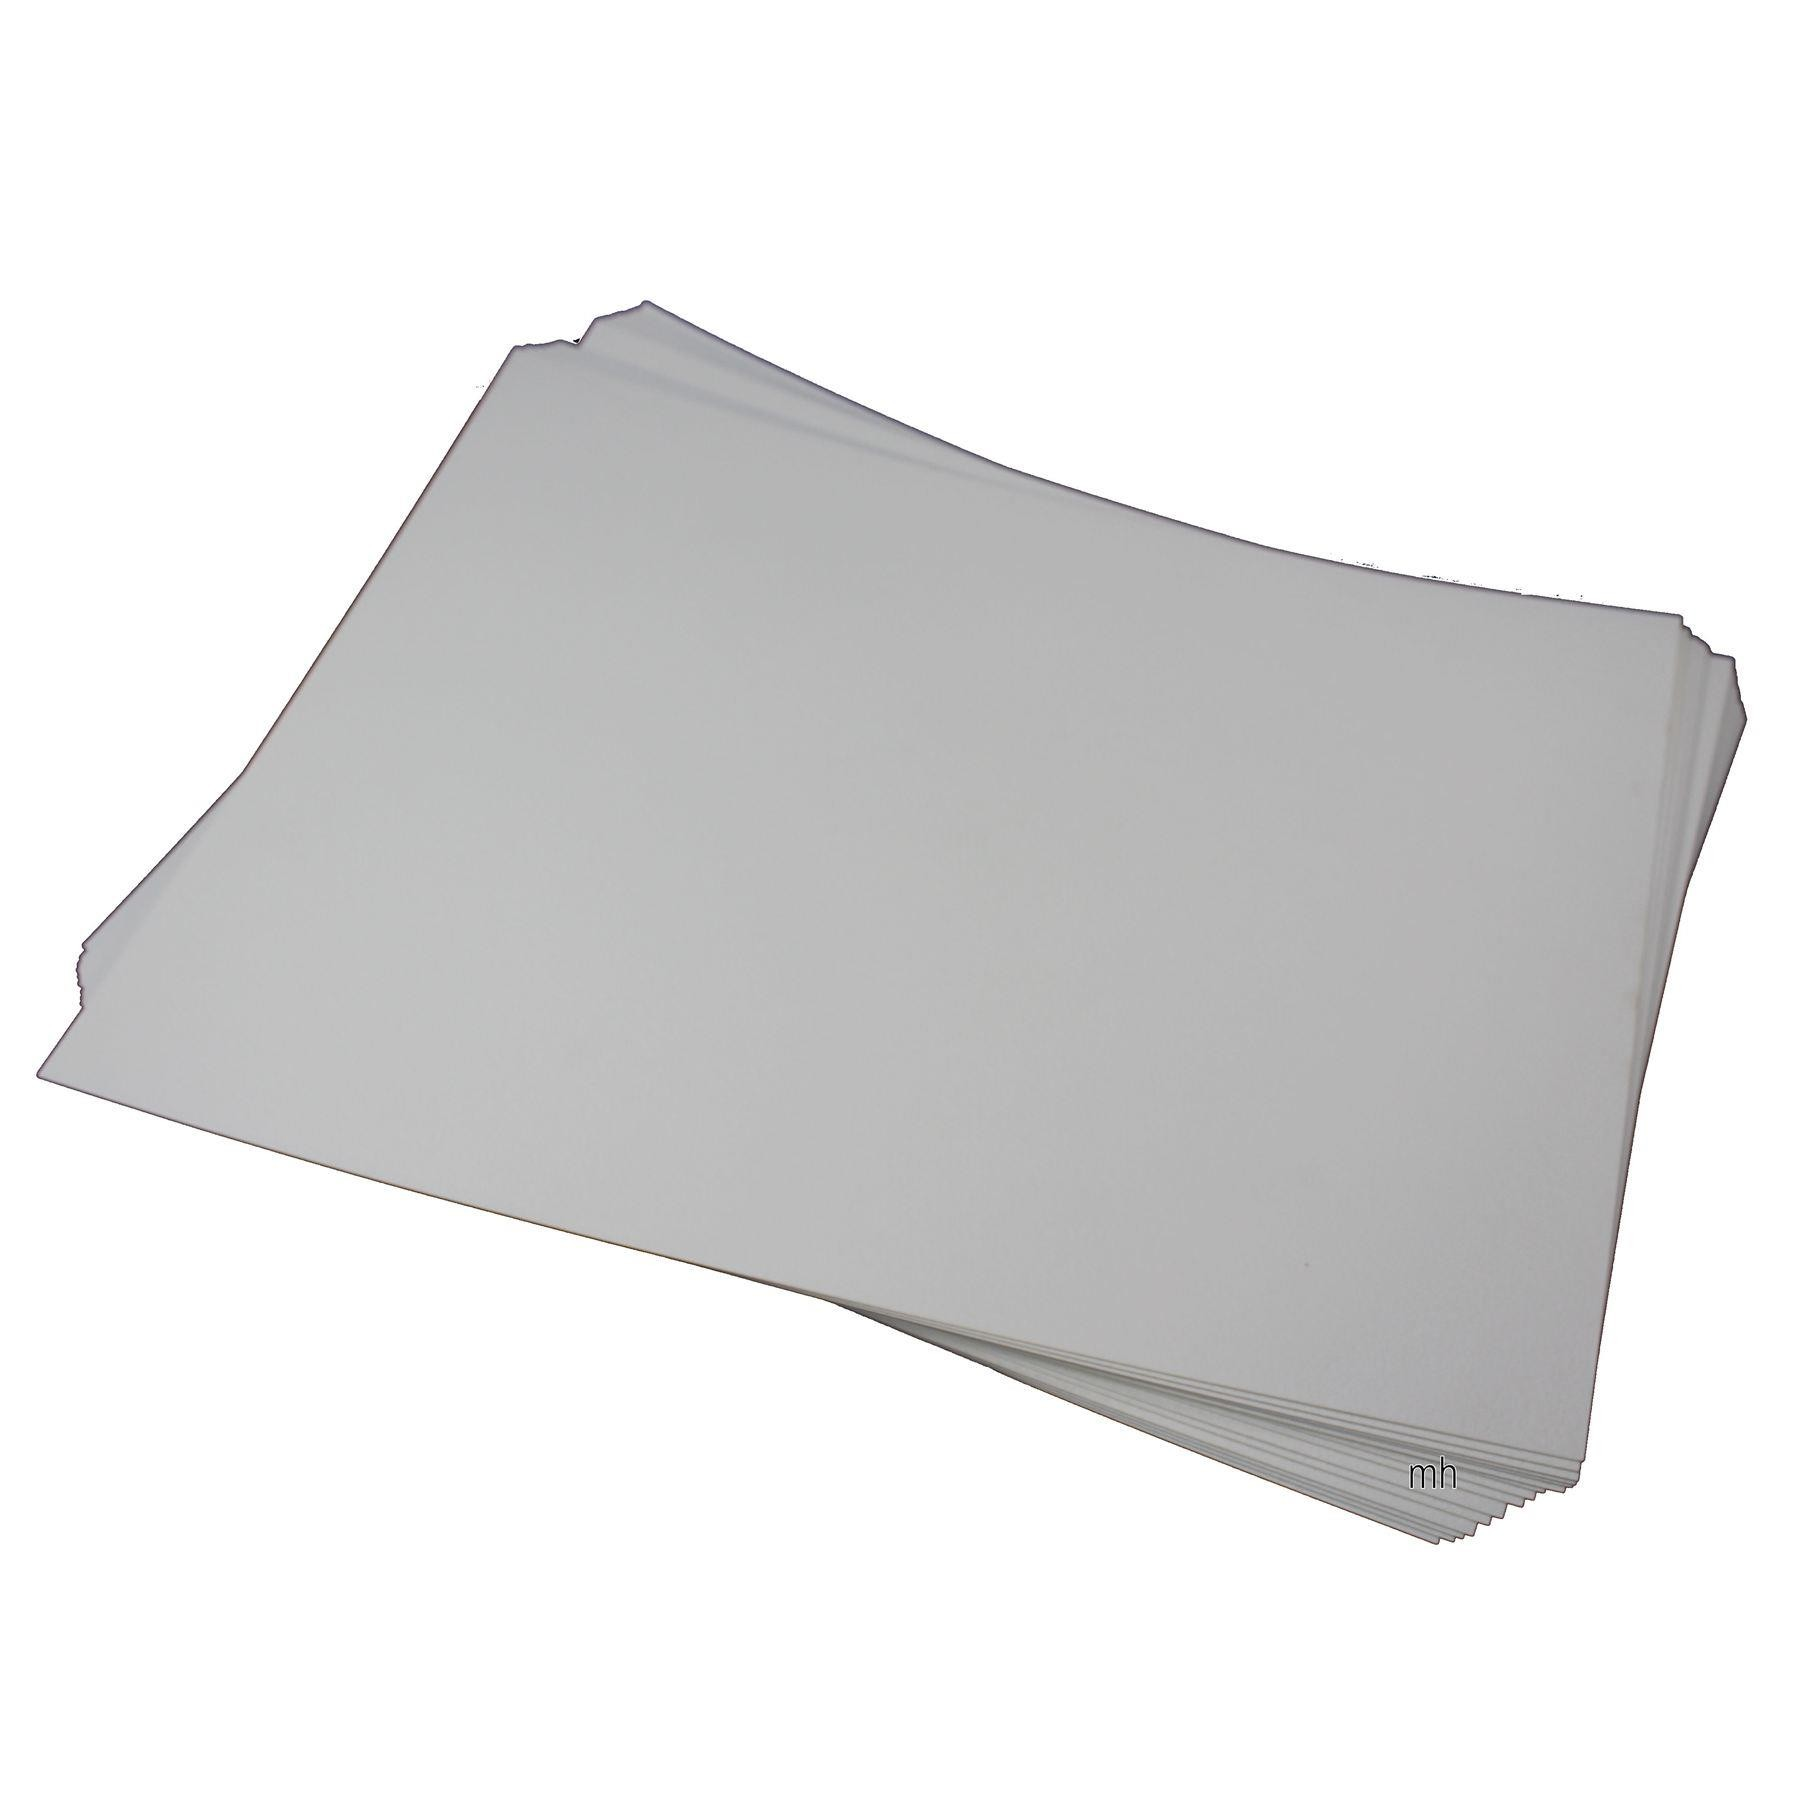 "Bockingford 4 sheets of 15"" x 11"" Rough watercolour paper 300gsm (140lbs)"